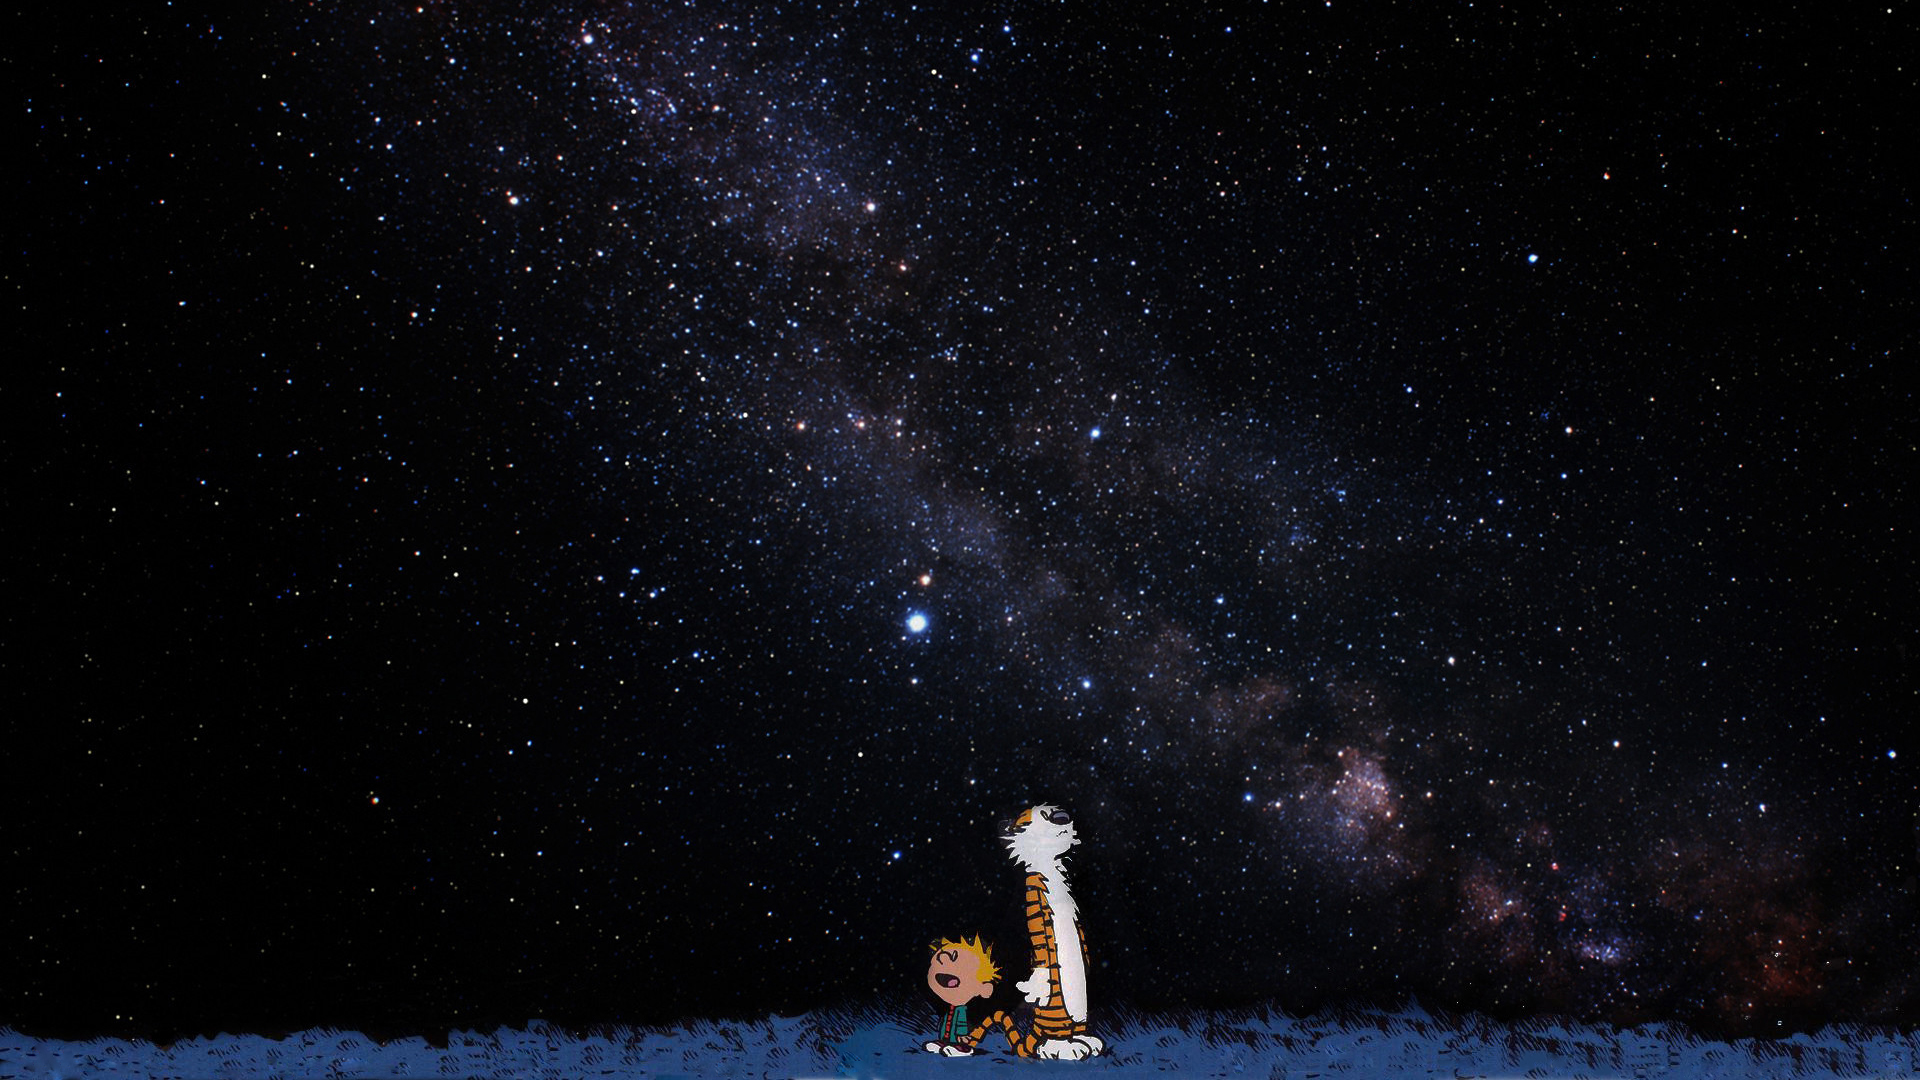 Calvin And Hobbes Stars wallpaper 180339 1920x1080